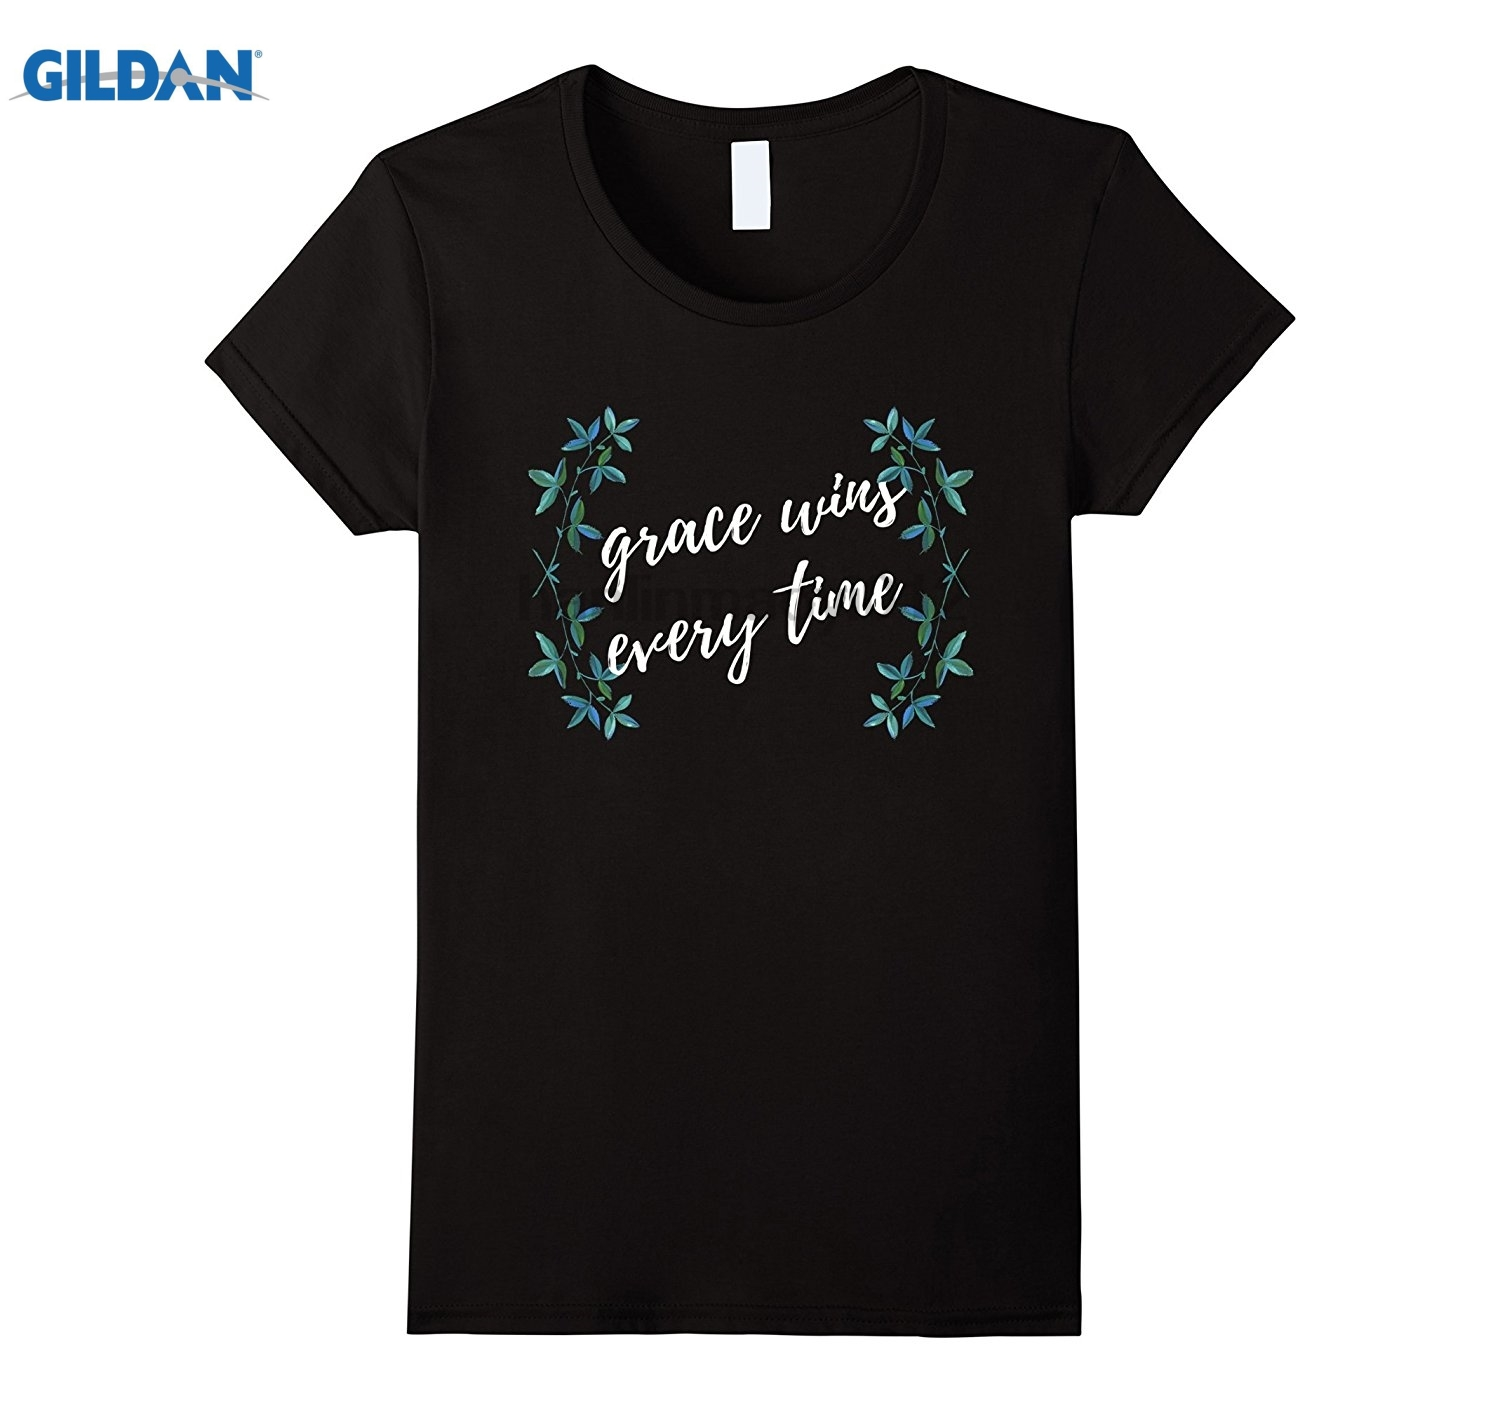 GILDAN Inspiring Christian T-Shirt Grace Wins Every Time Tee Hot Womens T-shirt